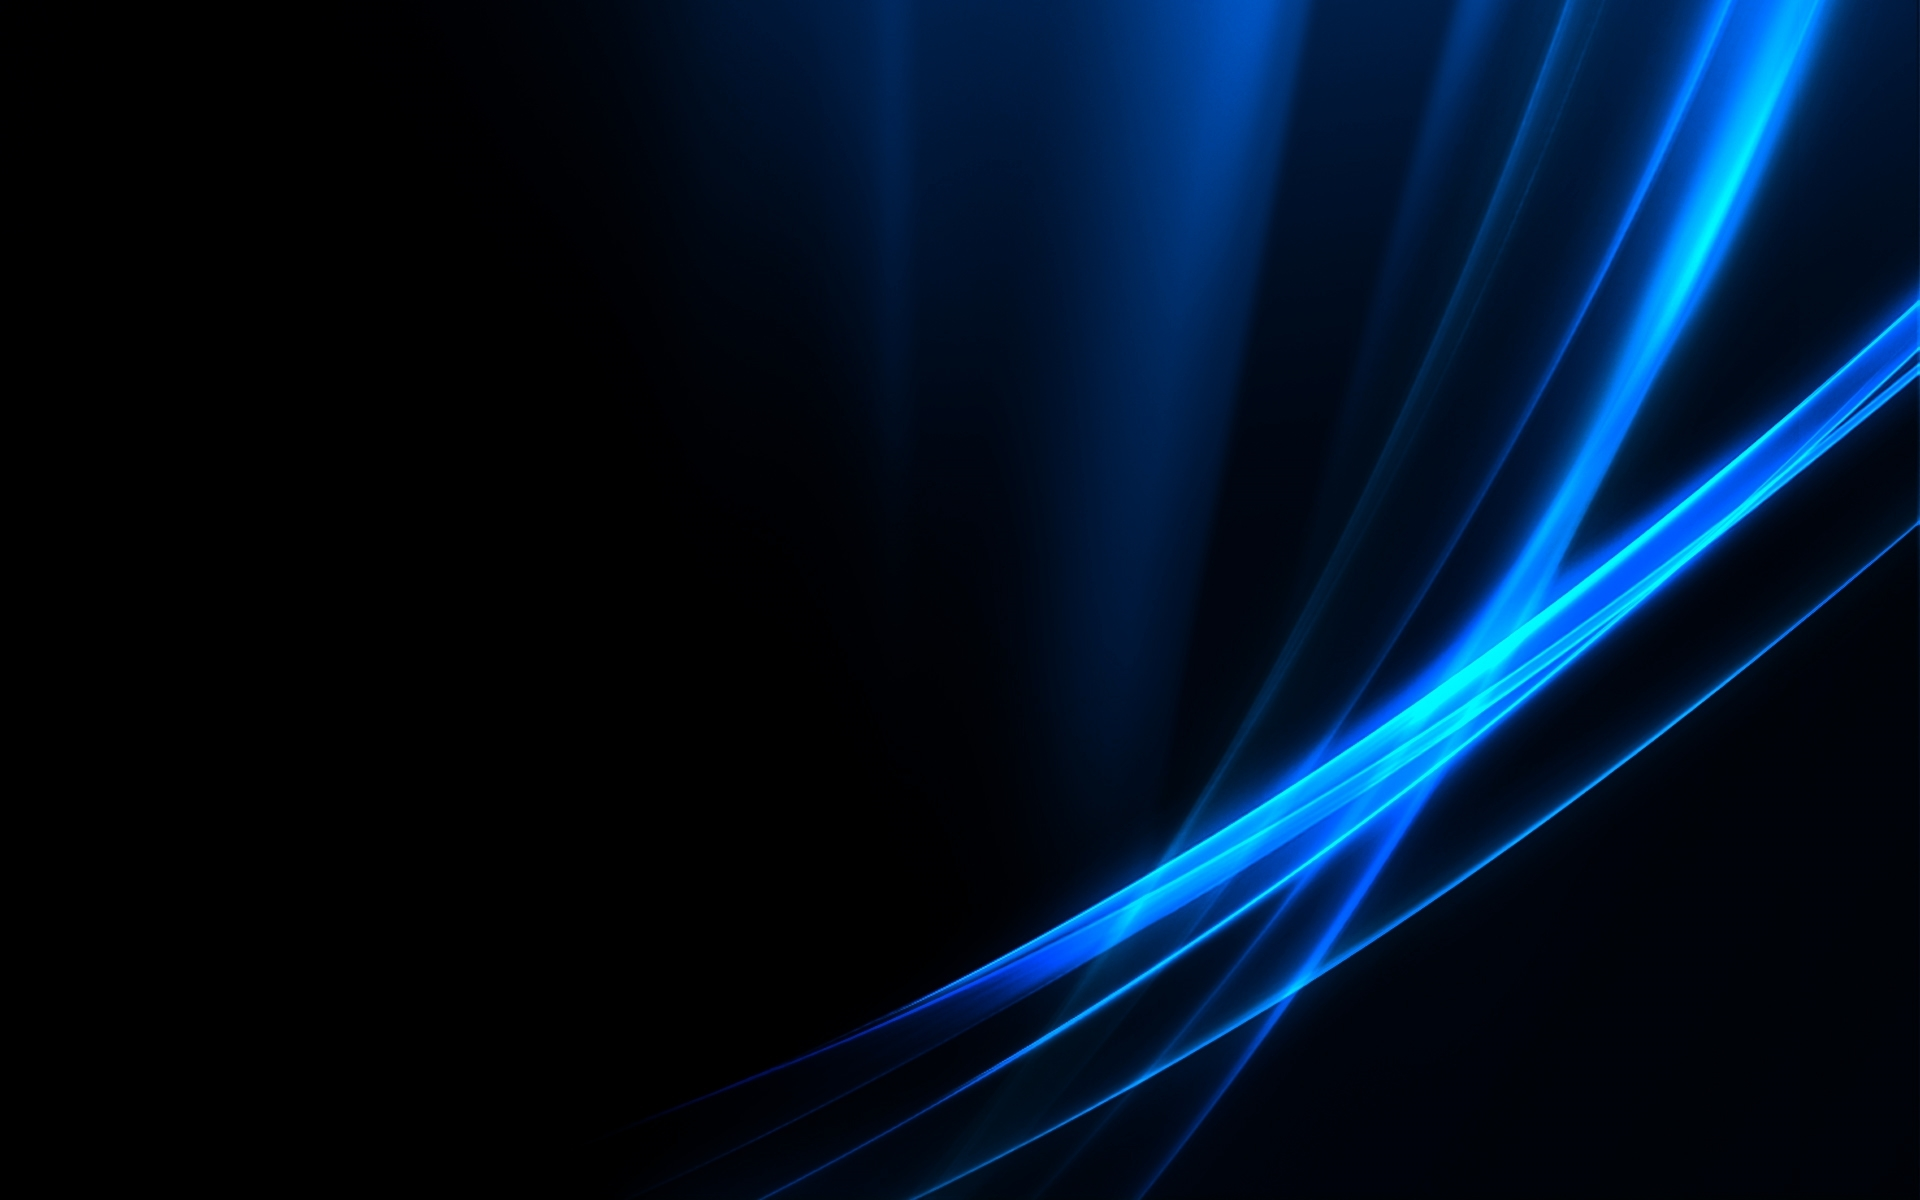 blue abstract full hd